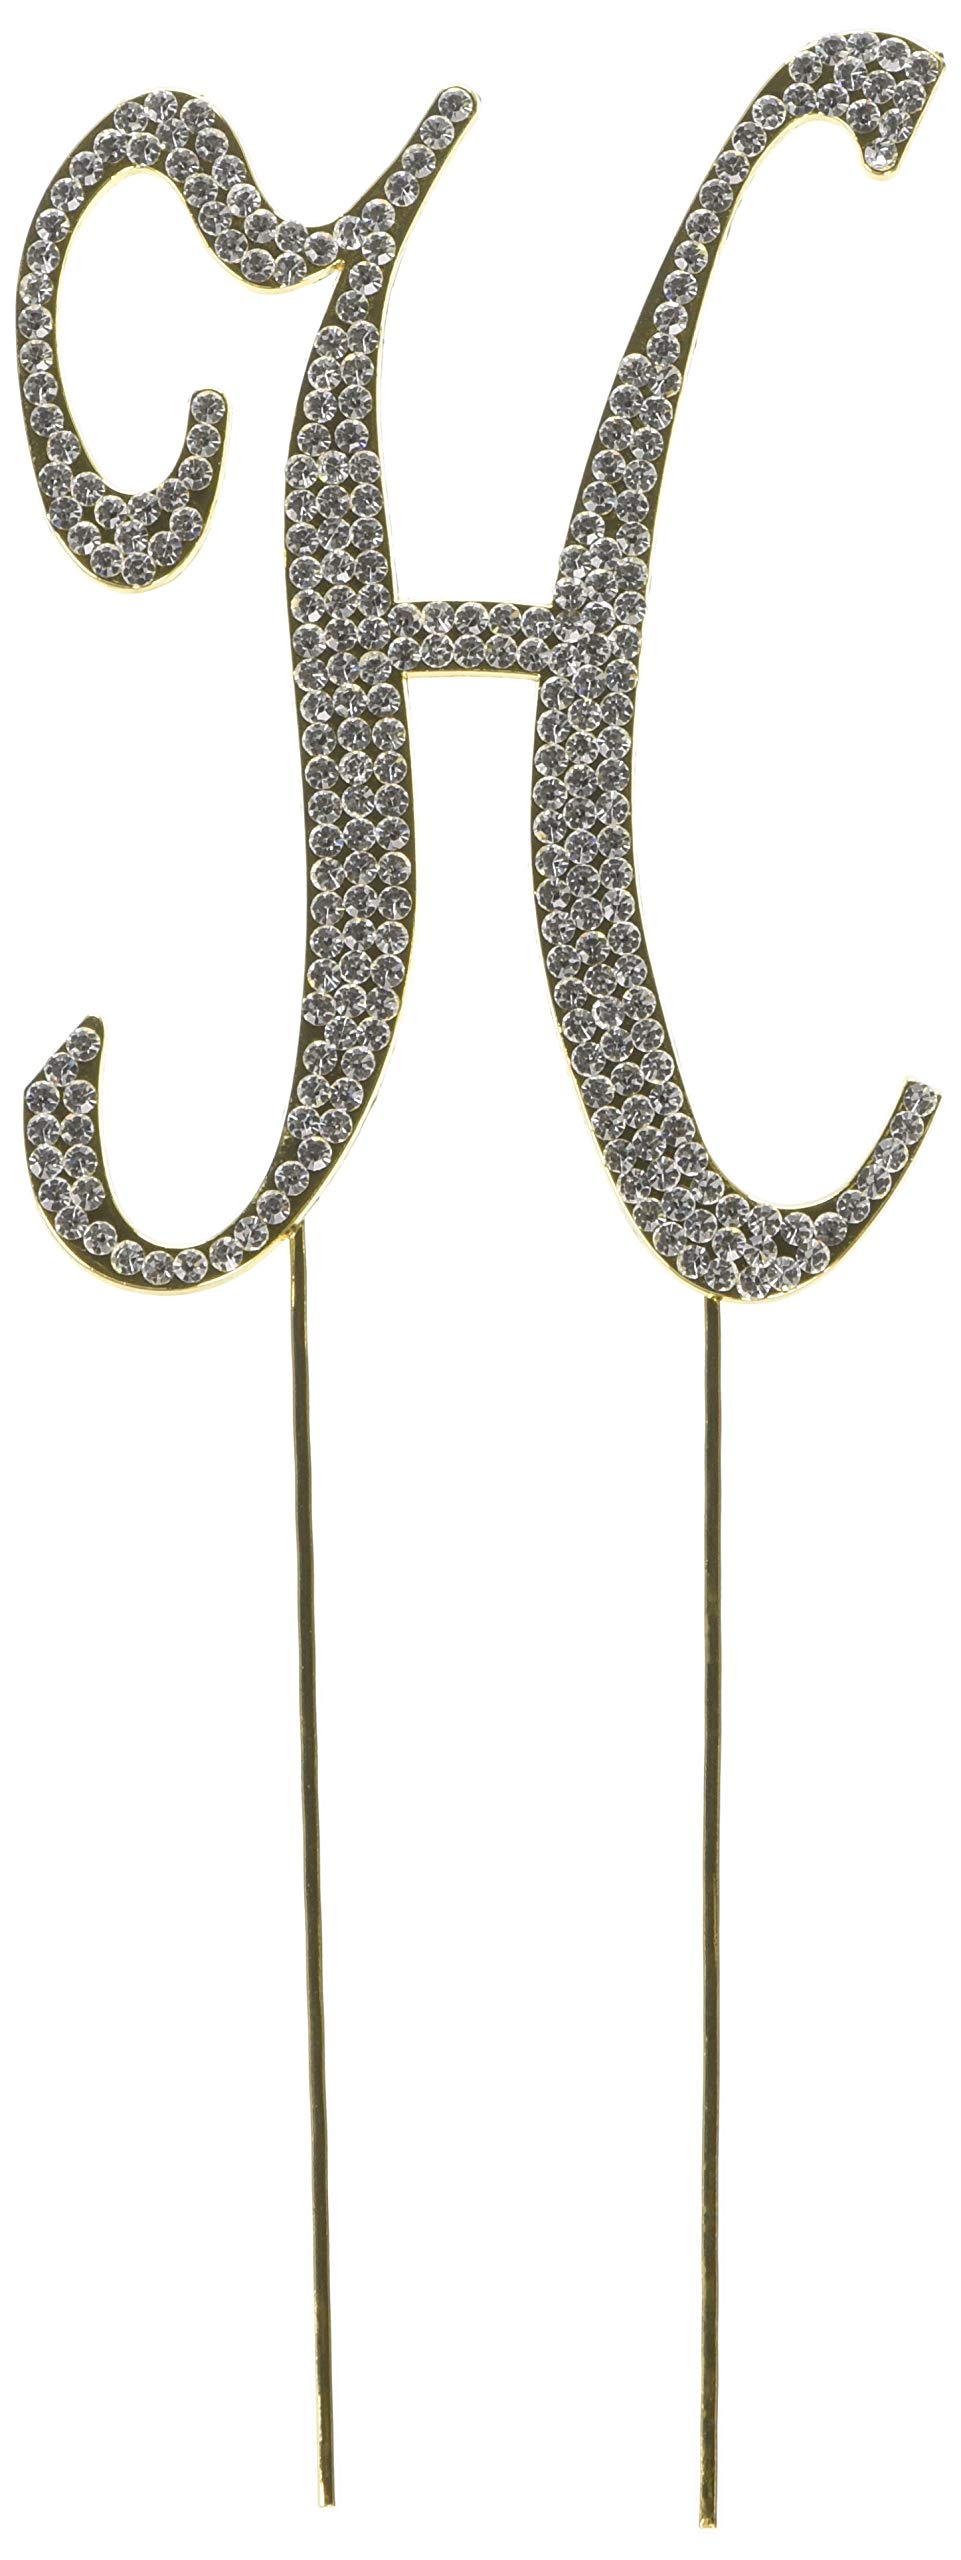 Unik Occasions Sparkling Collection Crystal Rhinestone Monogram Cake Topper - Letter H, Large, Gold